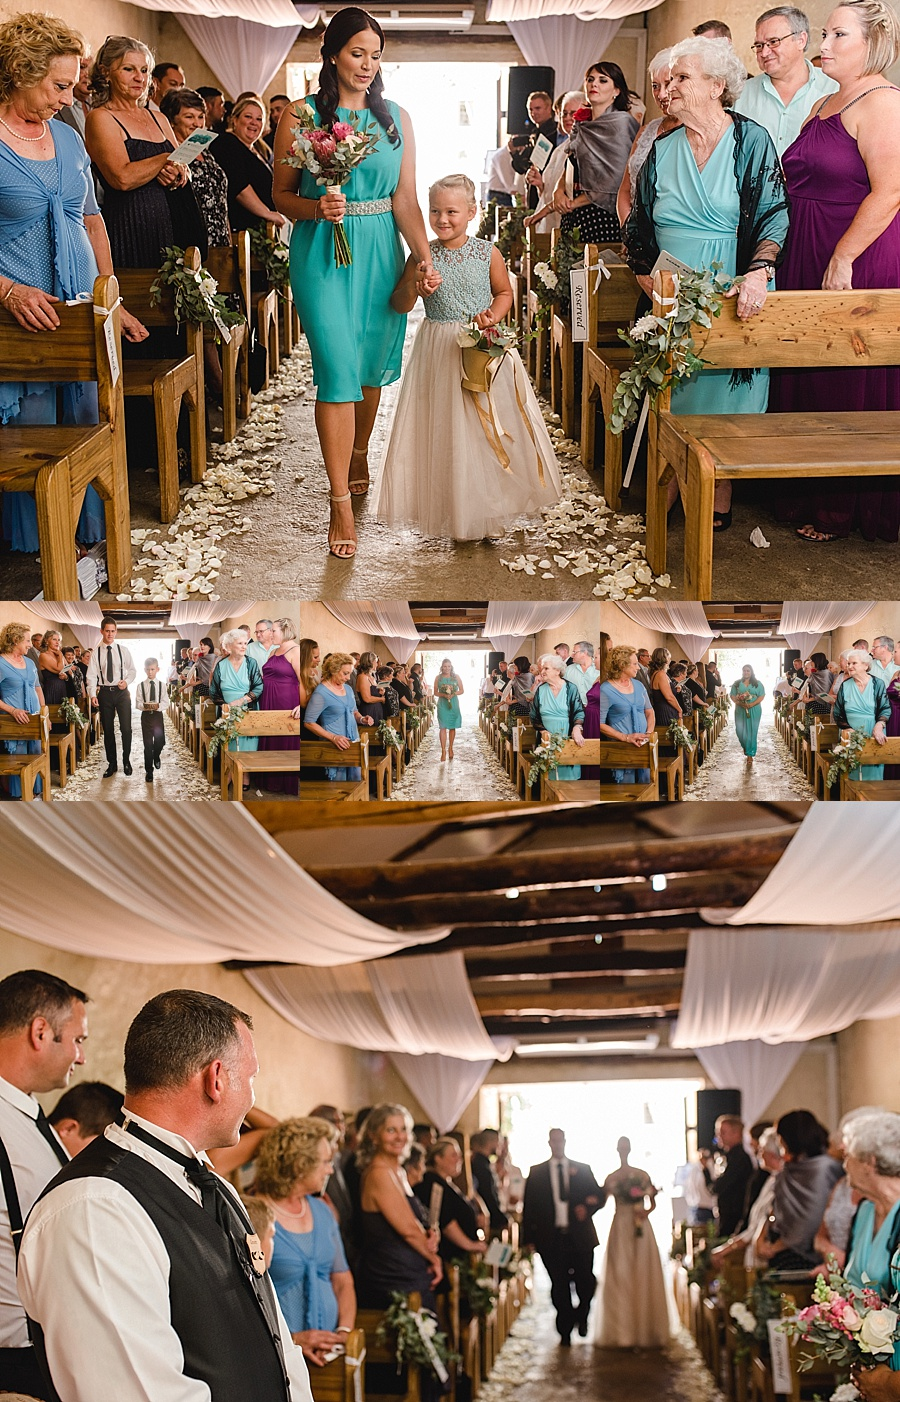 Darren Bester - Wedding Photographer - Langkloof Roses - Lauren + Shannon_0046.jpg